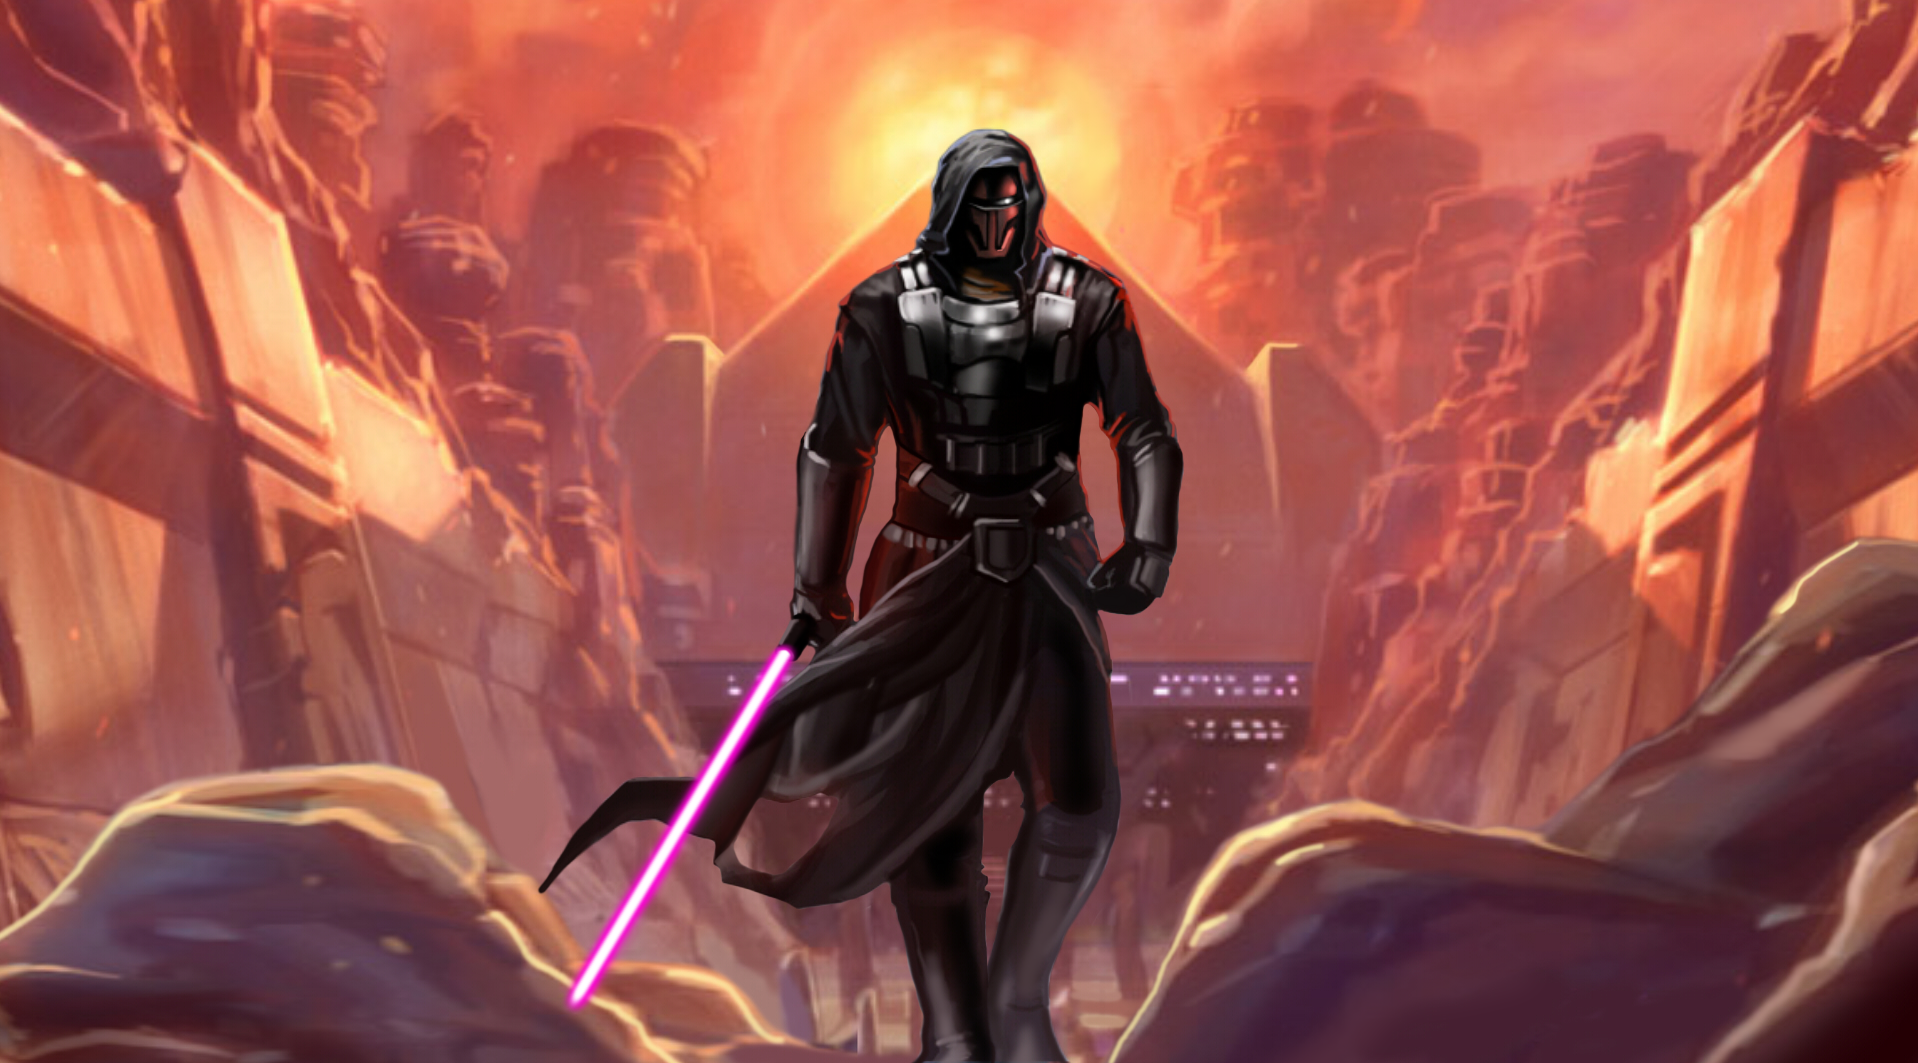 The Old Republic Wallpaper Revan By Zardis1965 On Deviantart Star Wars The Old Star Wars Darth Revan Star Wars Sith